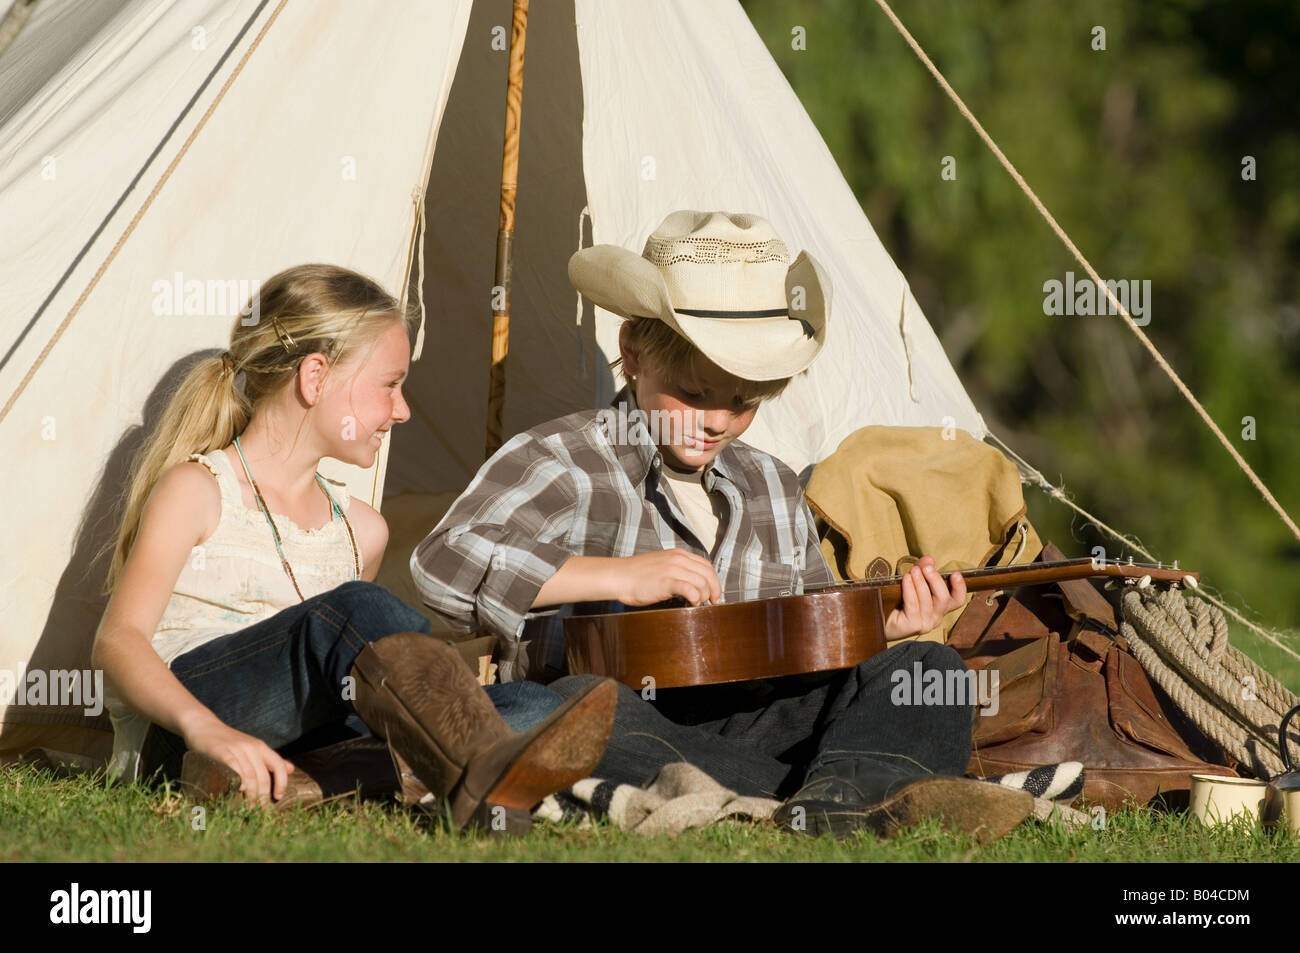 A boy playing a guitar - Stock Image